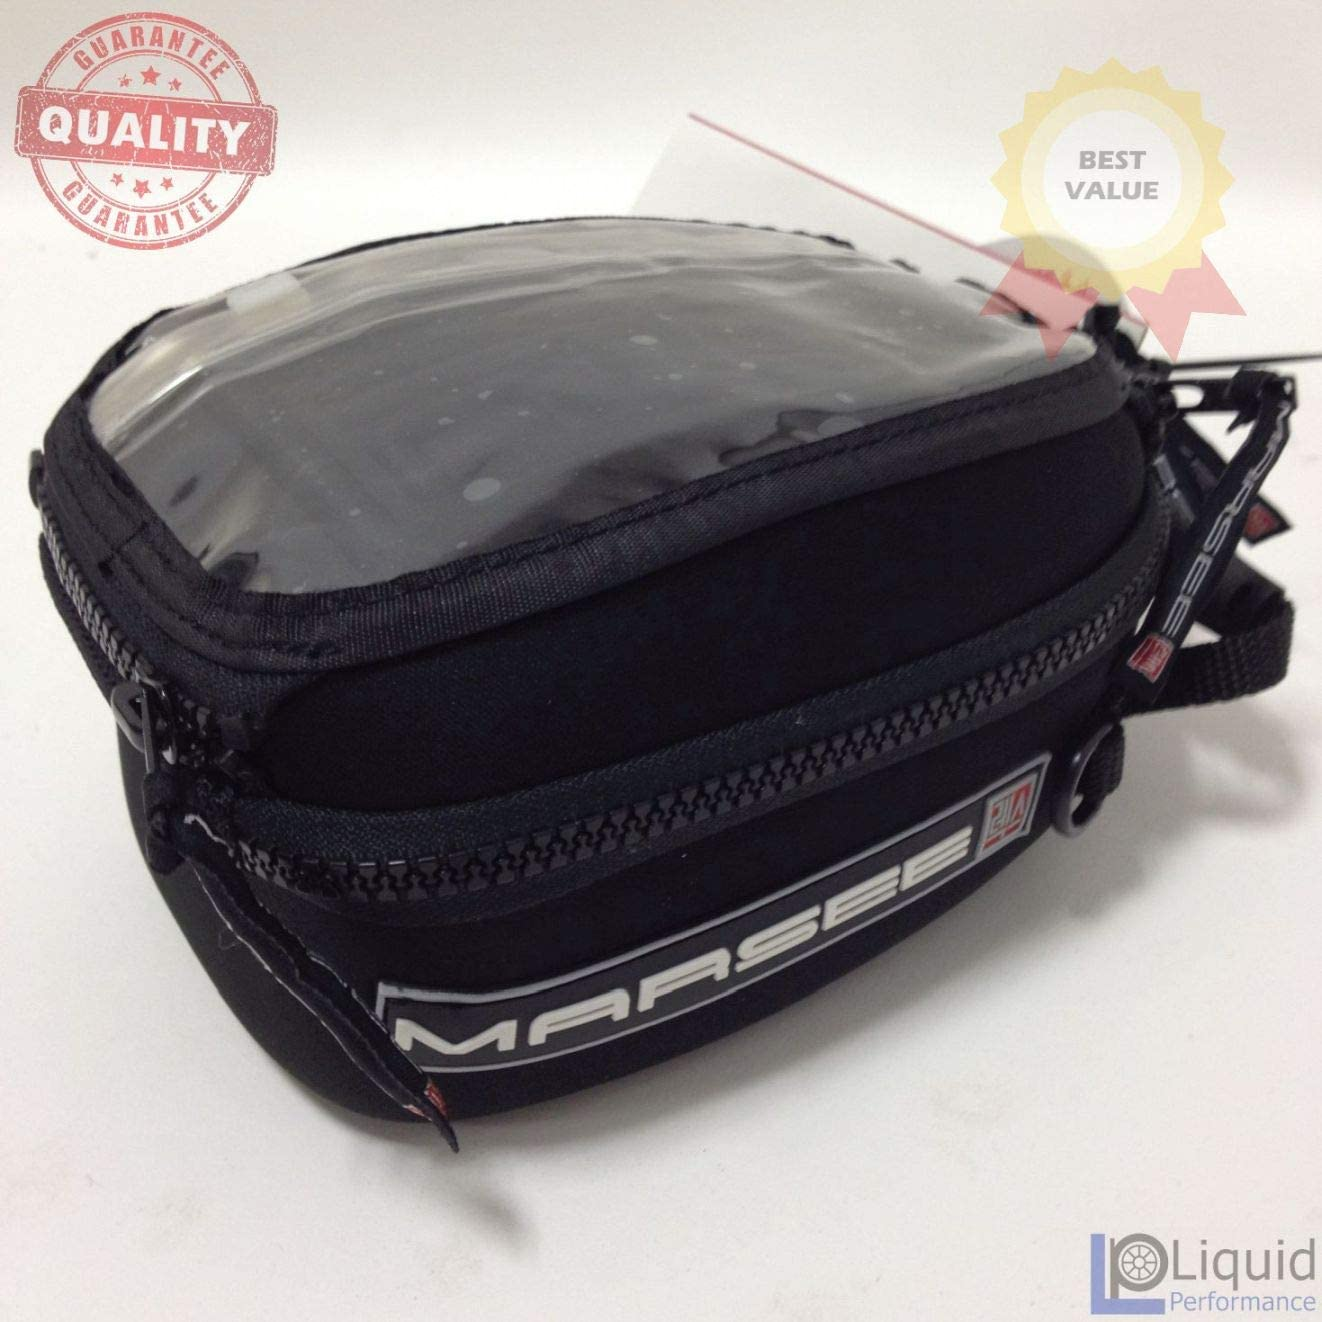 Marsee 1.5 Liter Bullet Bag with Hole- 4 Max 49% OFF Universal No Mounting Superior